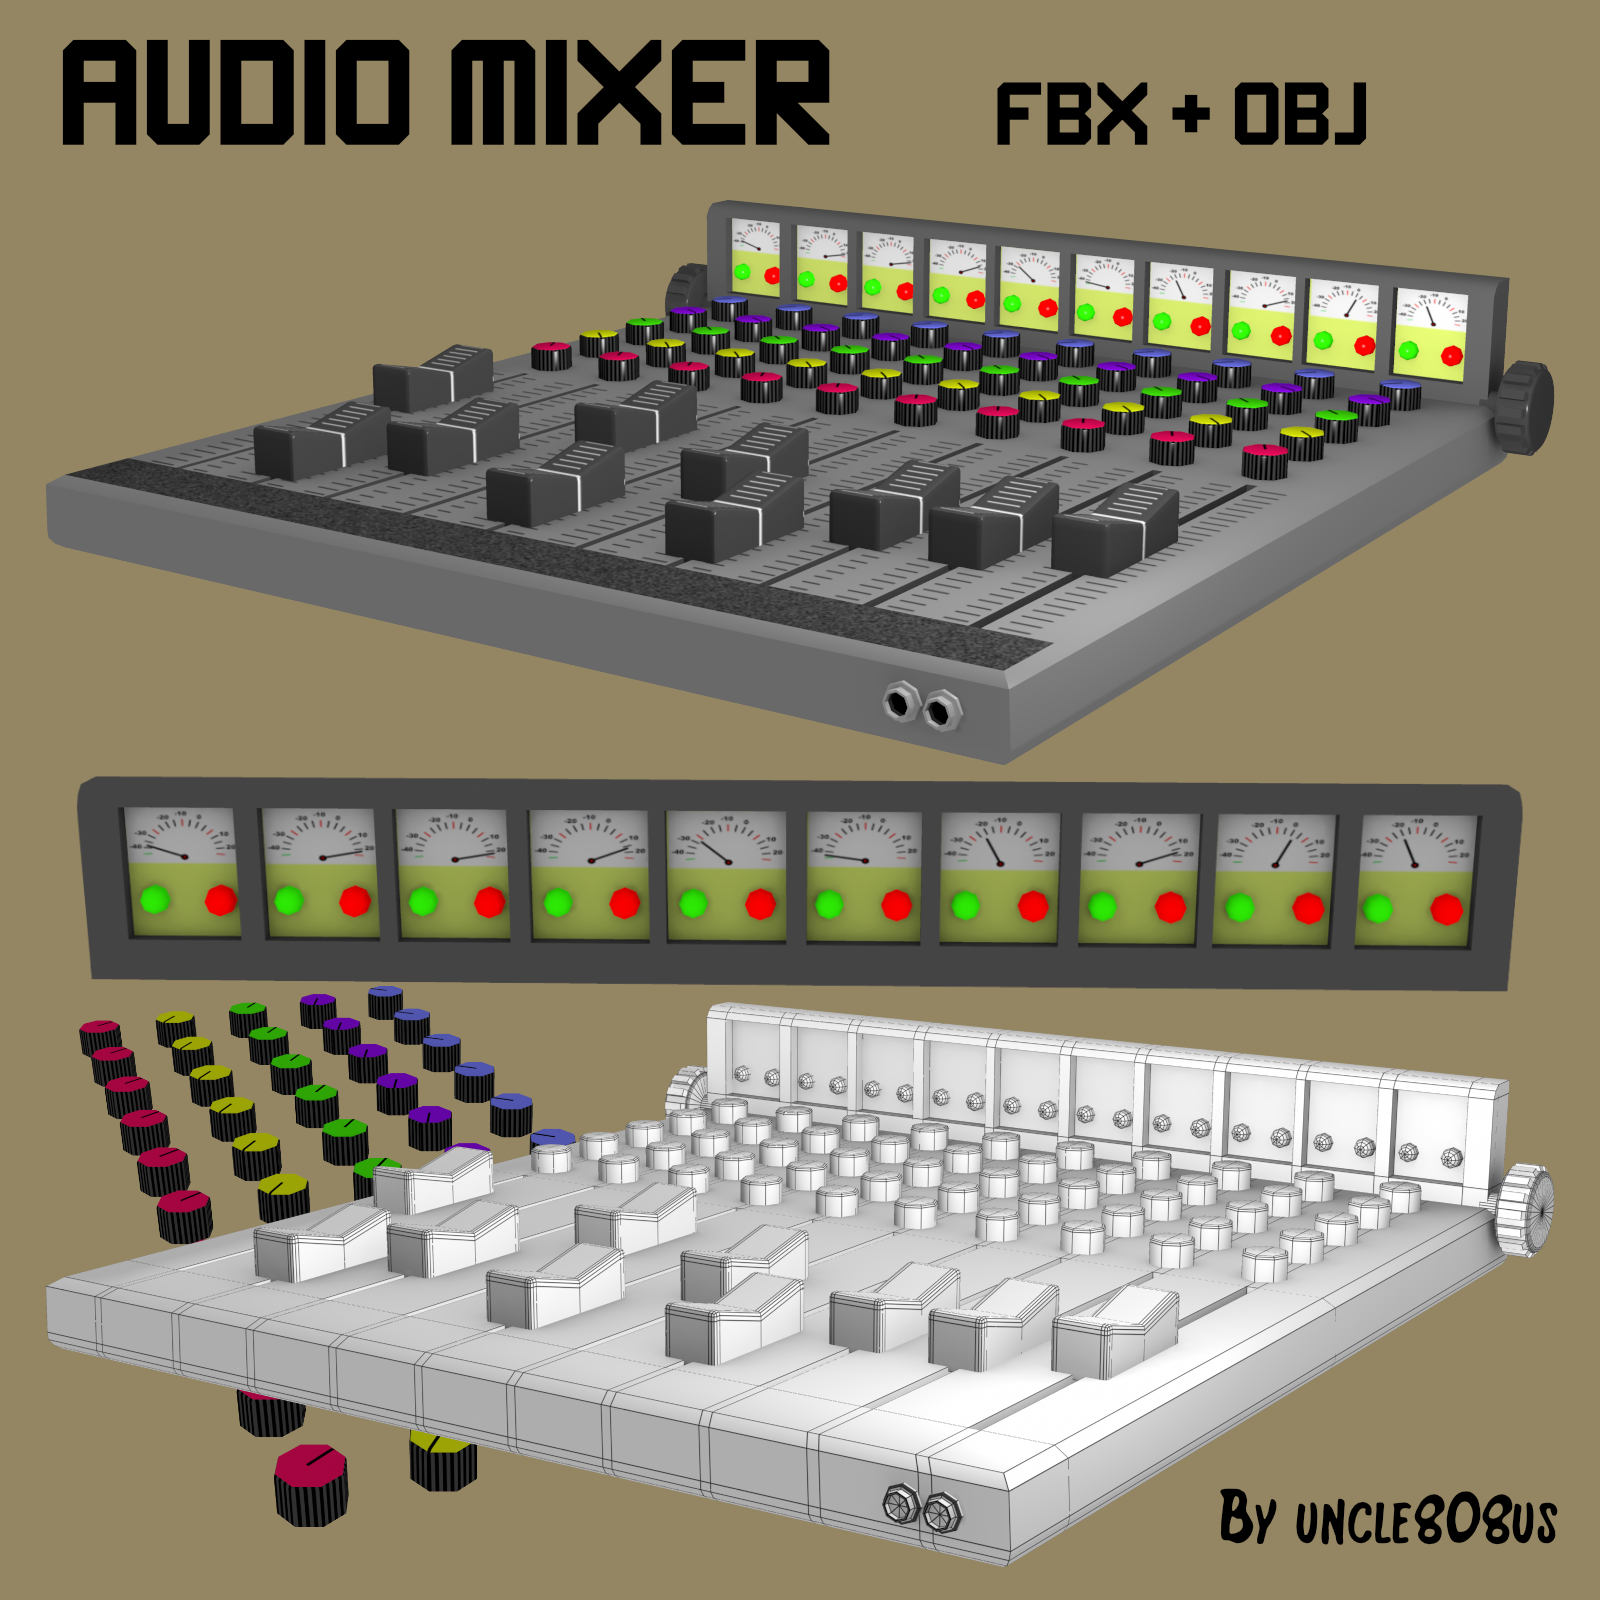 audio mixer fbx_obj 3d model fbx 220269